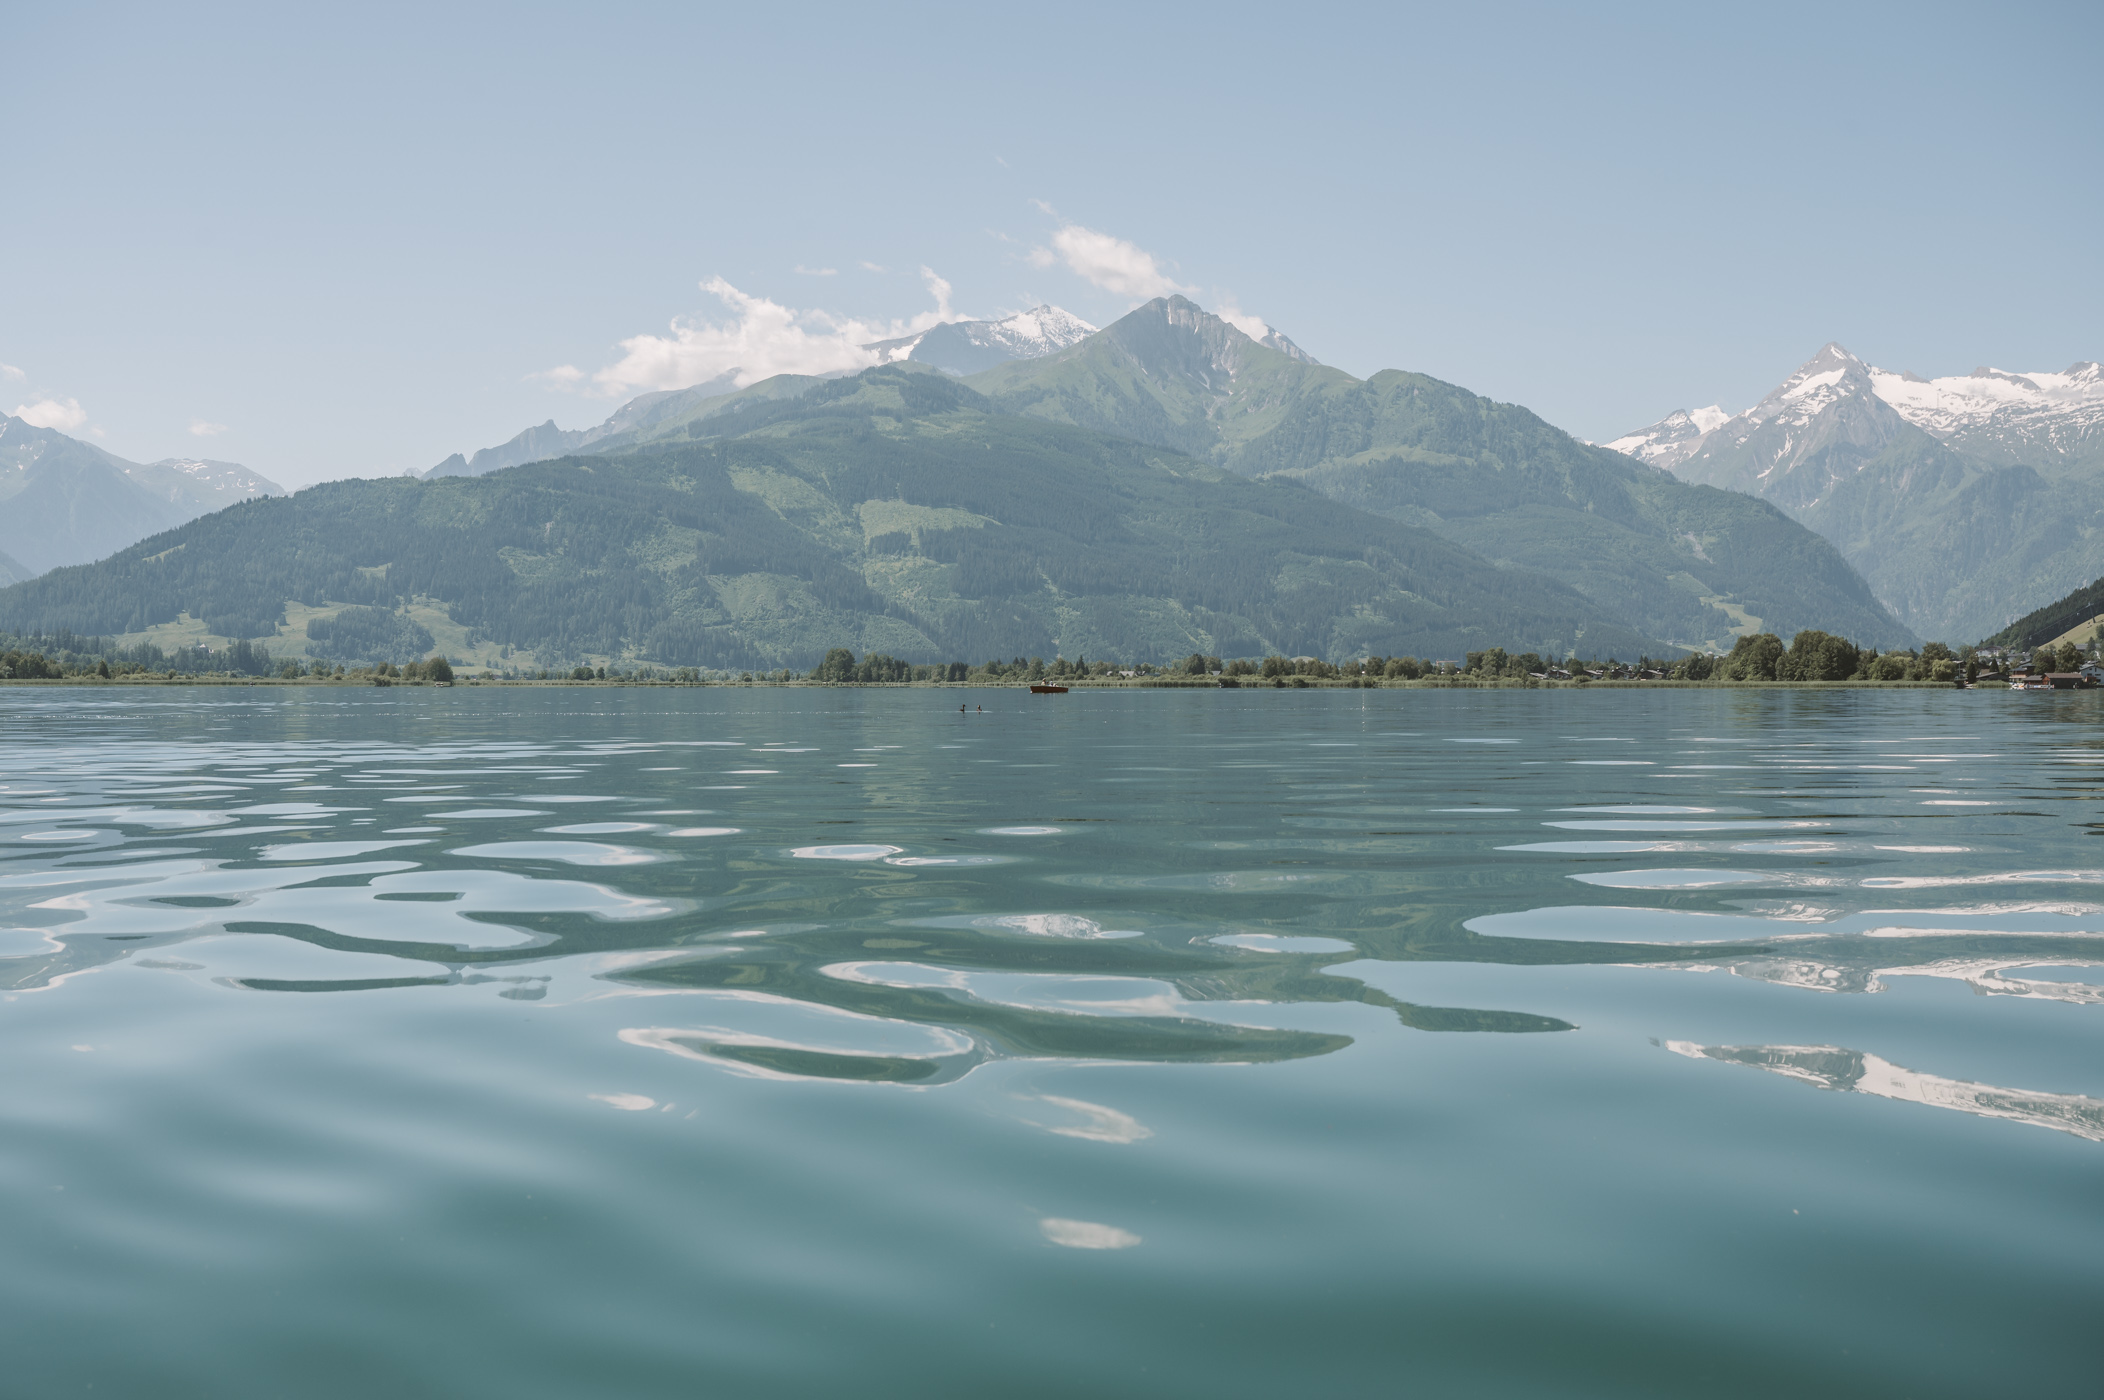 Boat ride at lake Zell